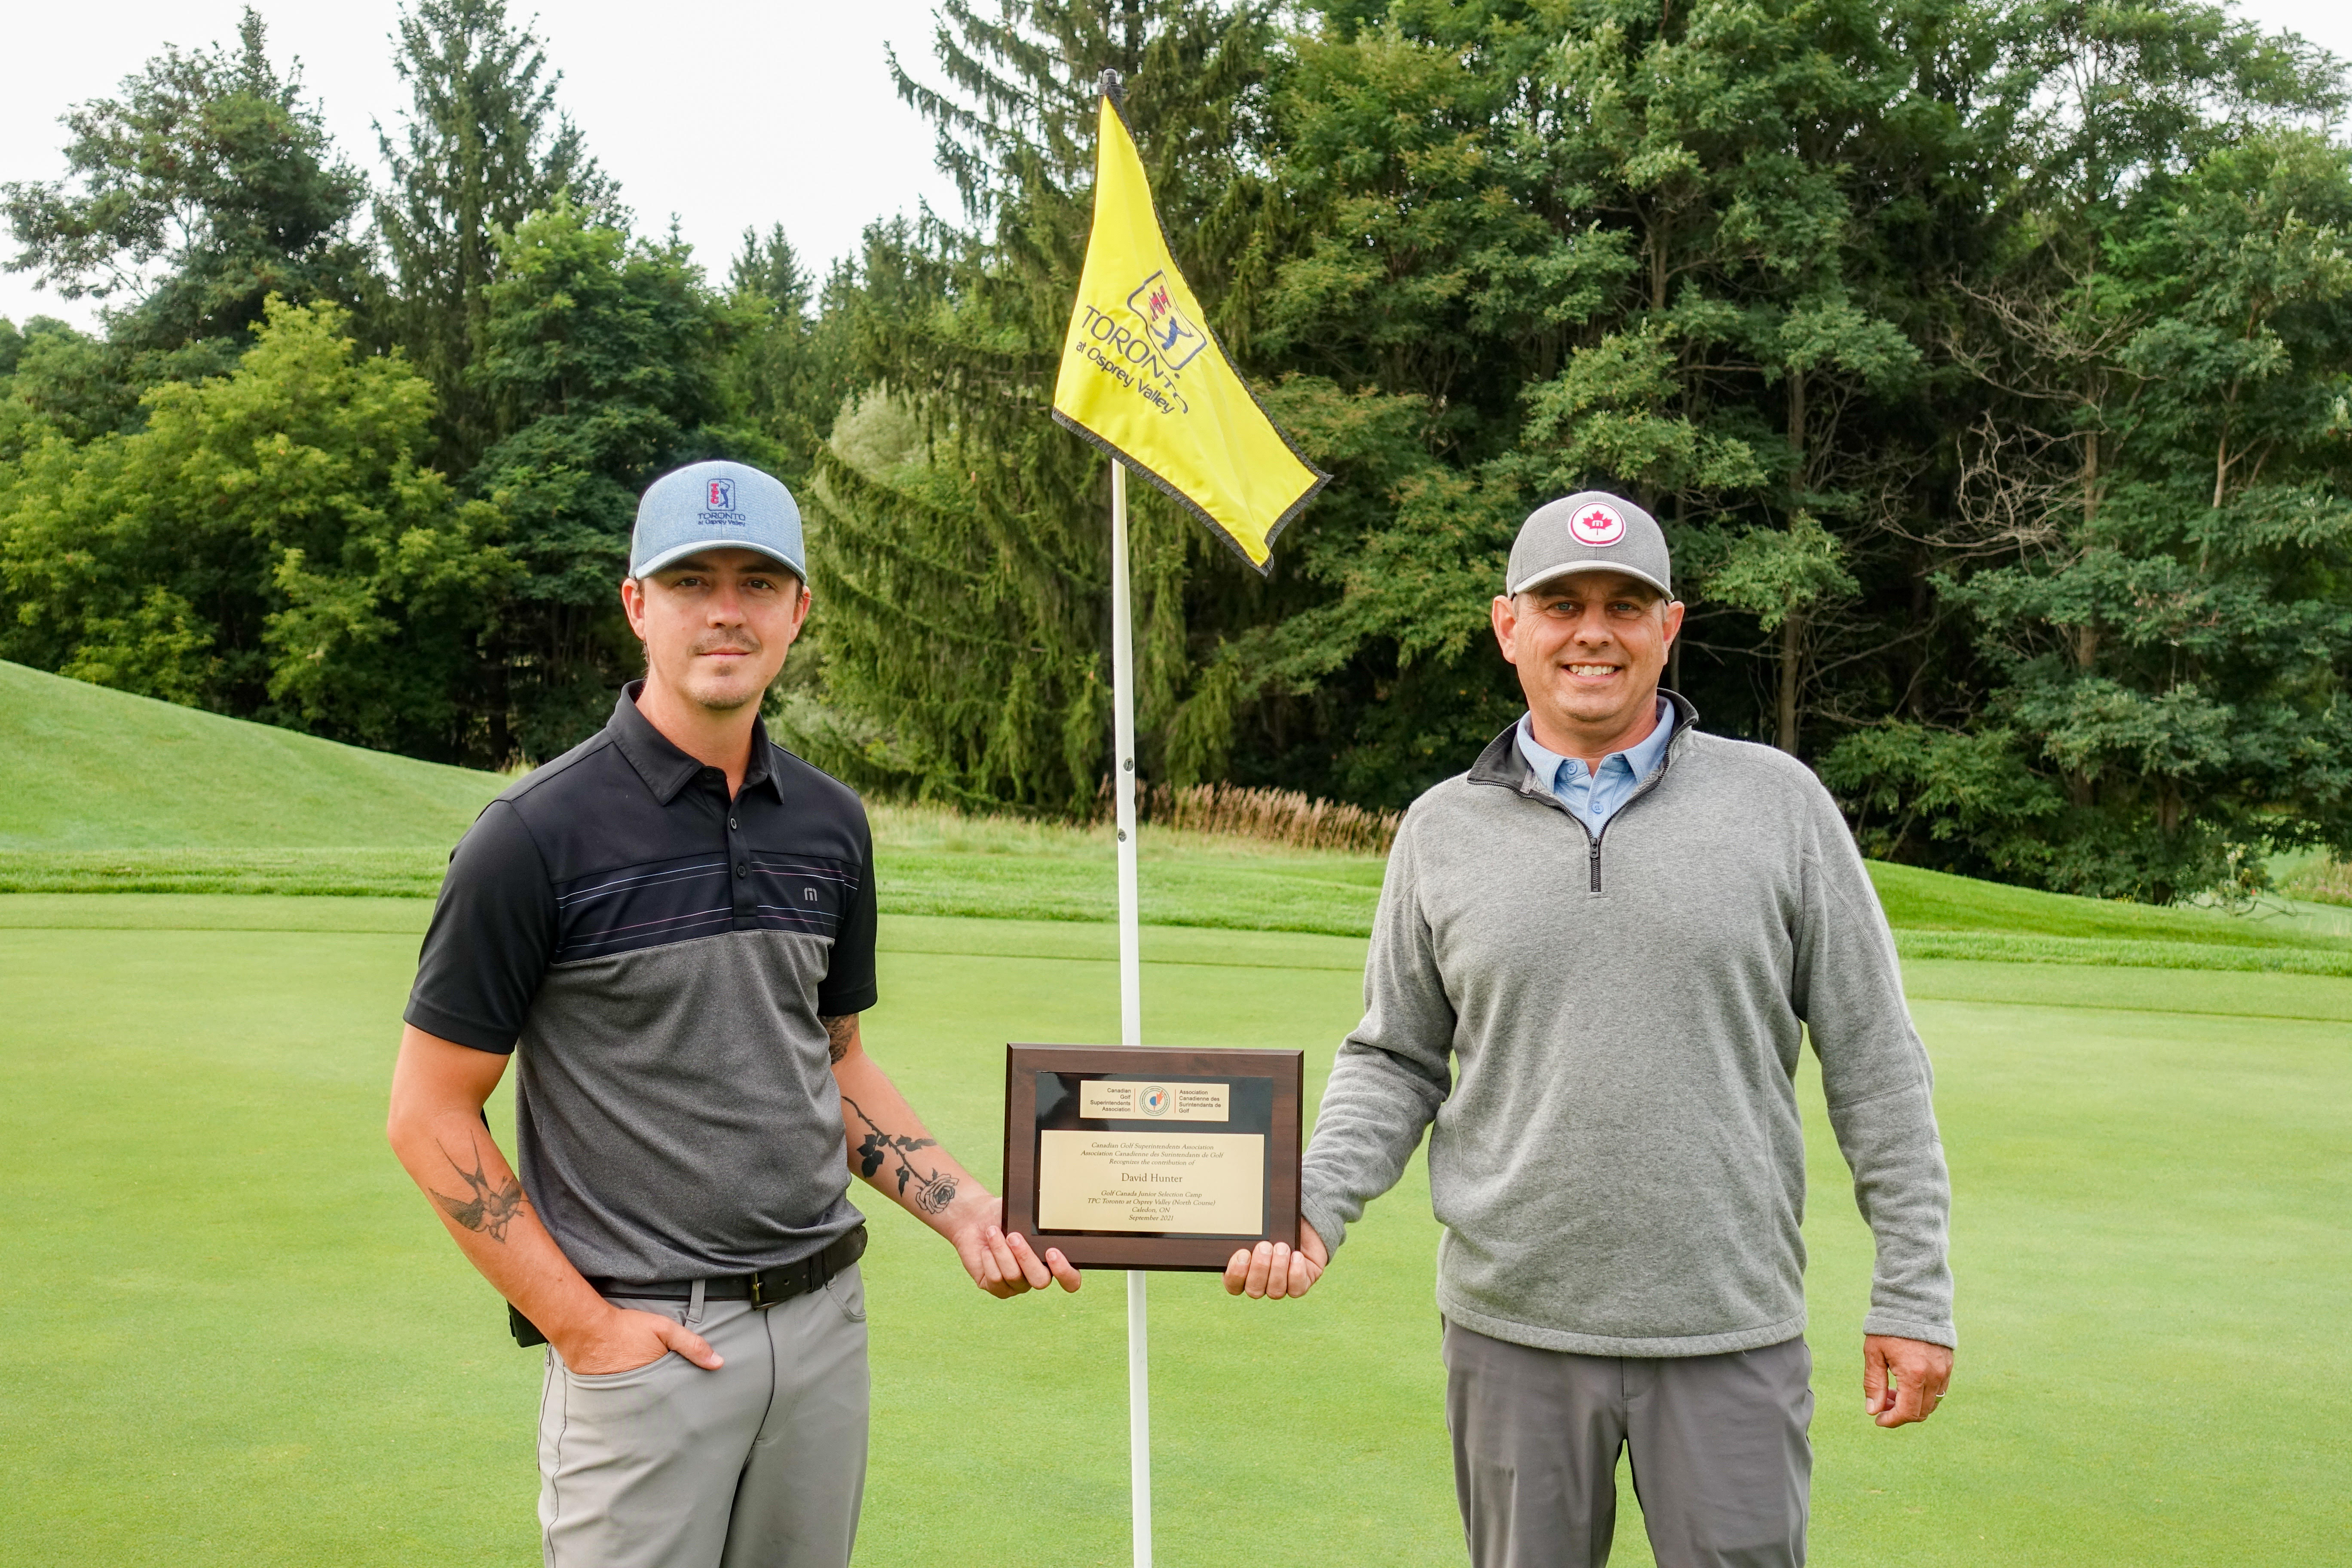 National_Tournament_Photo_Page_Docs/Dave Hunter & Aaron Hill